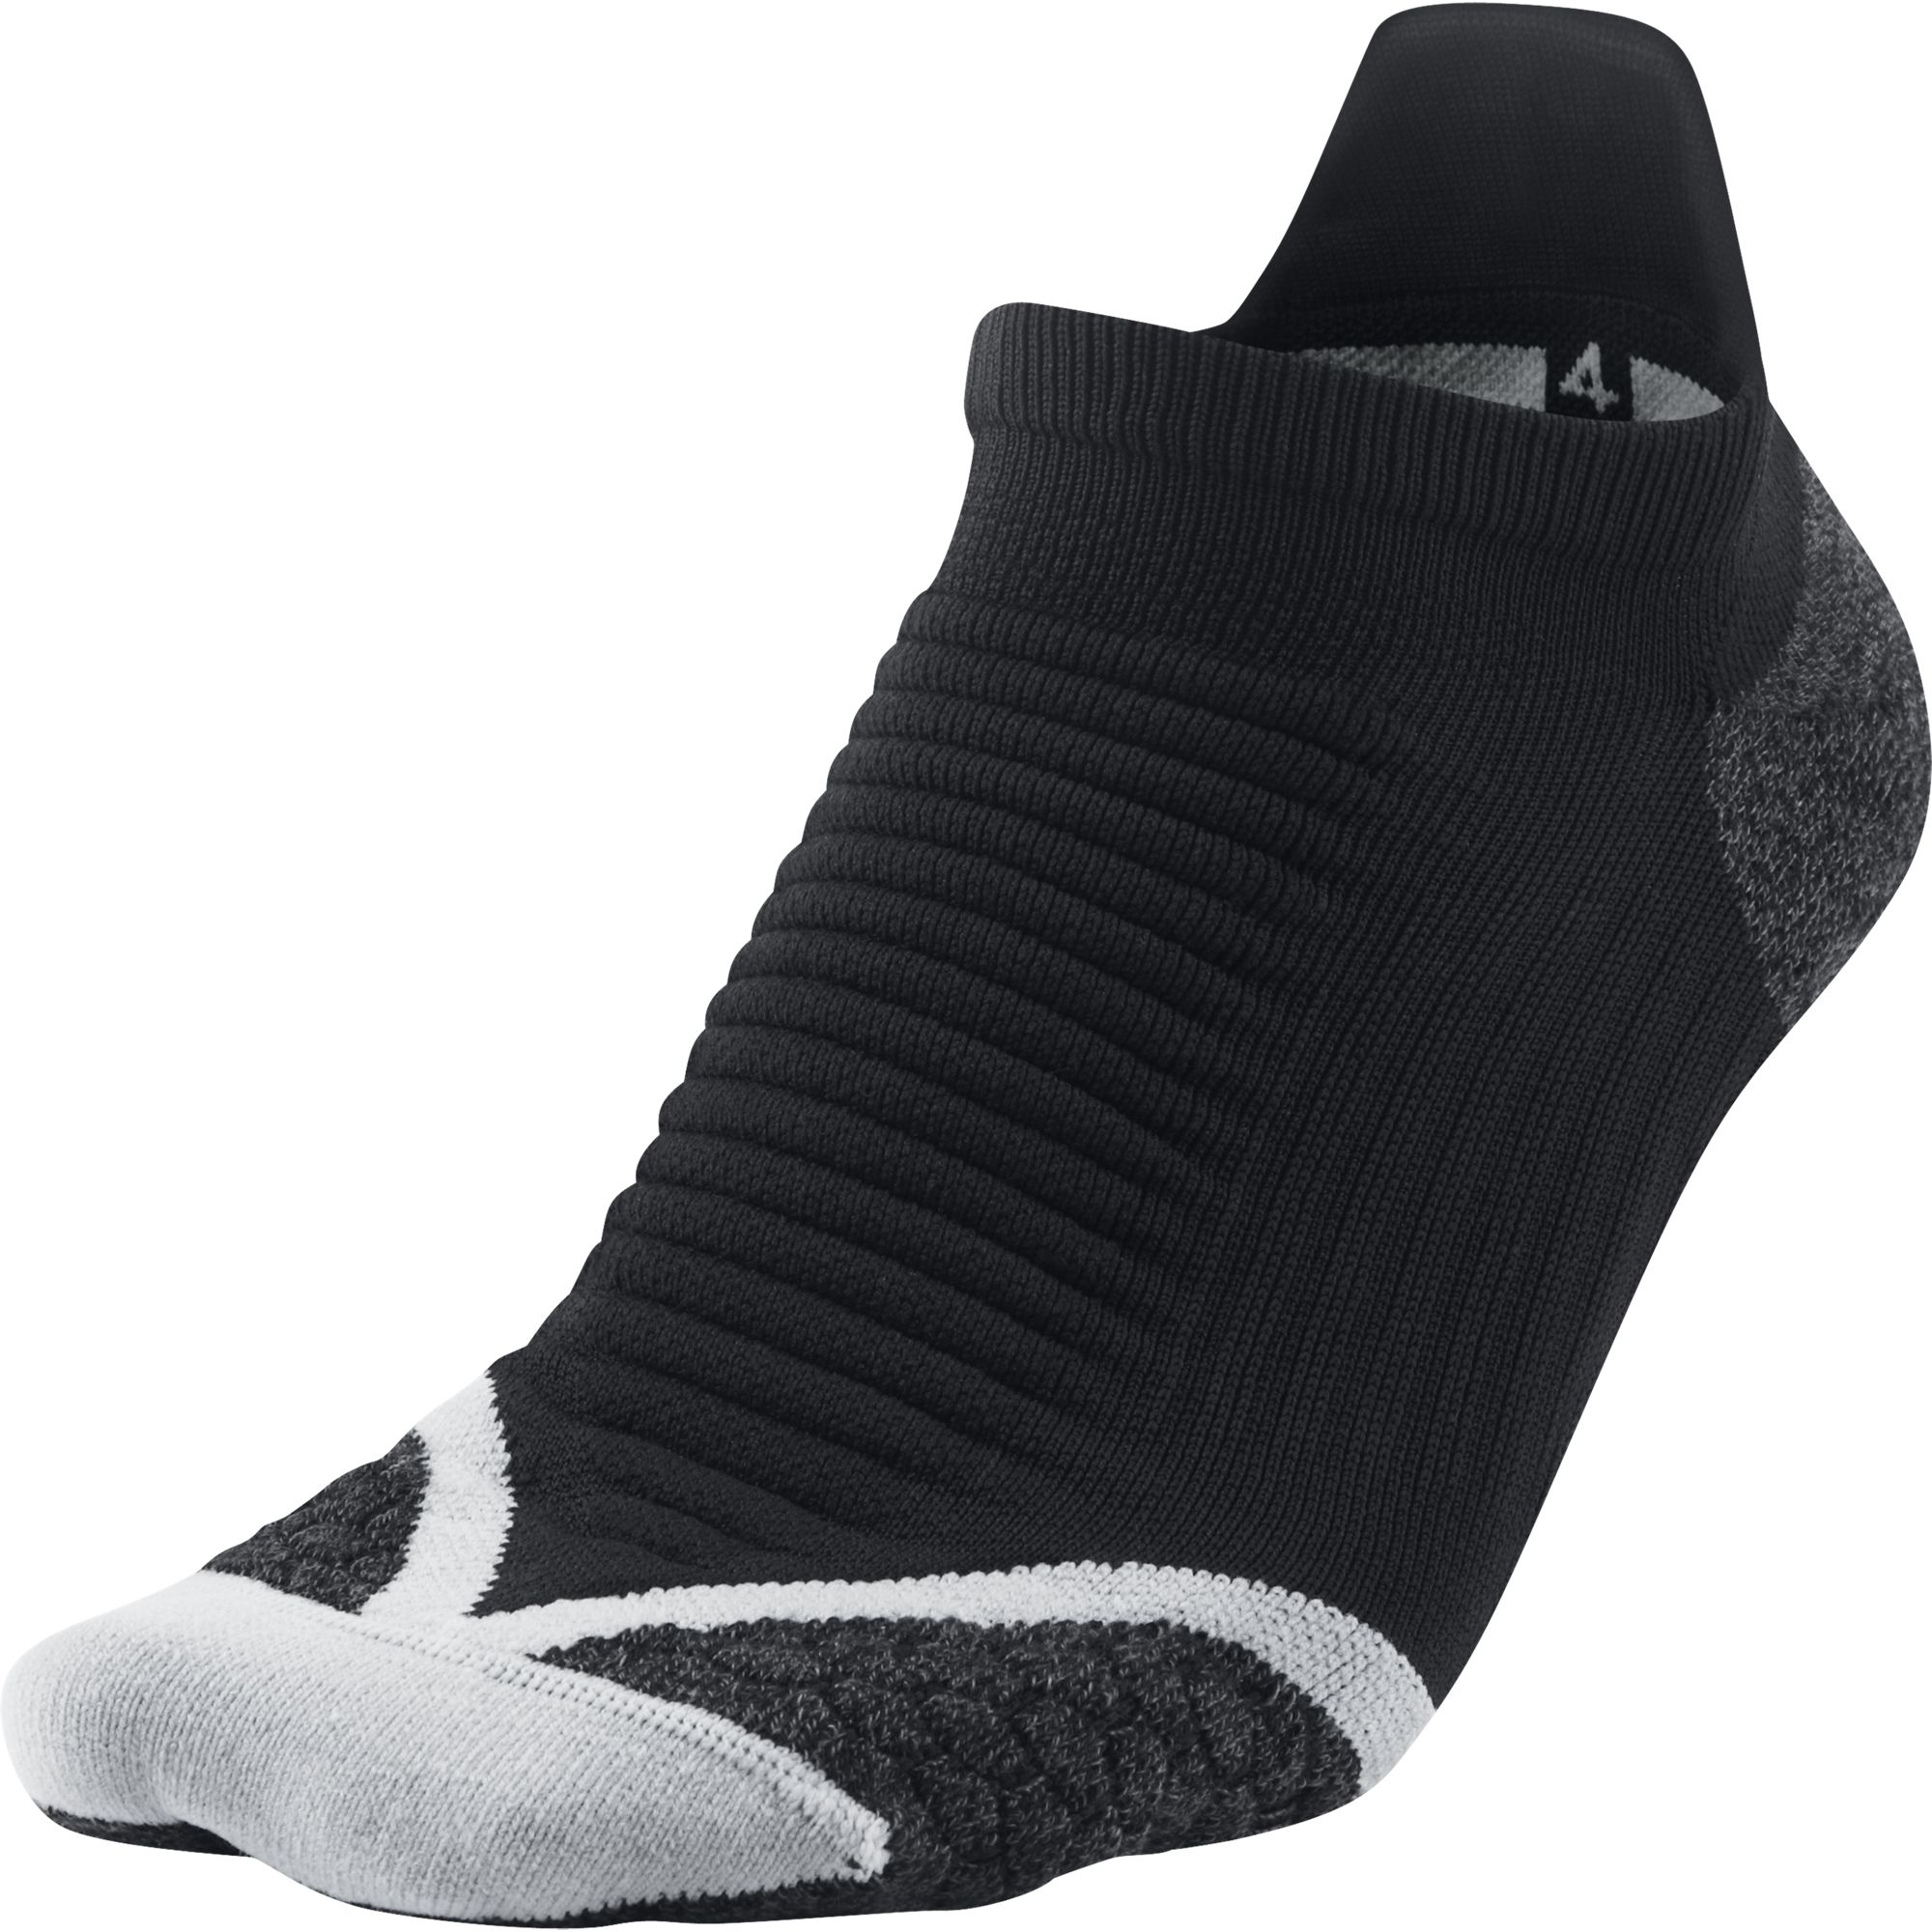 Nike Носки Nike Elite Cushioned No-Show Tab, 1 пара чулок д щитков nike guard lock elite sleeve su12 se0173 011 m чёрный